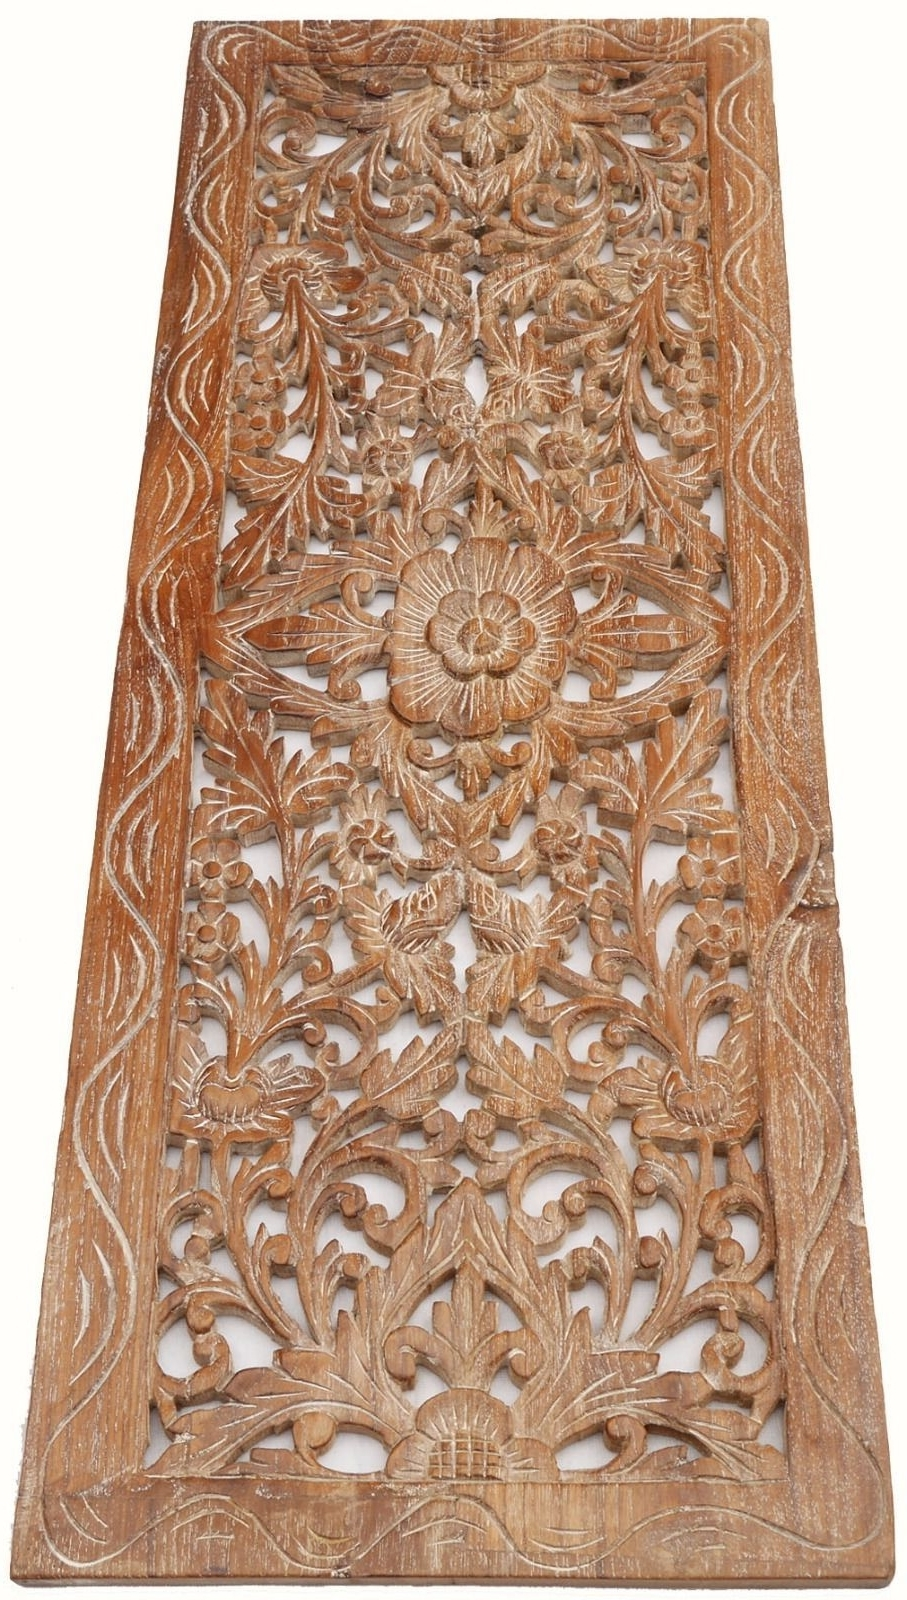 Asian Carved Wood Wall Decor Panel. Floral Wood Wall Art (View 3 of 15)